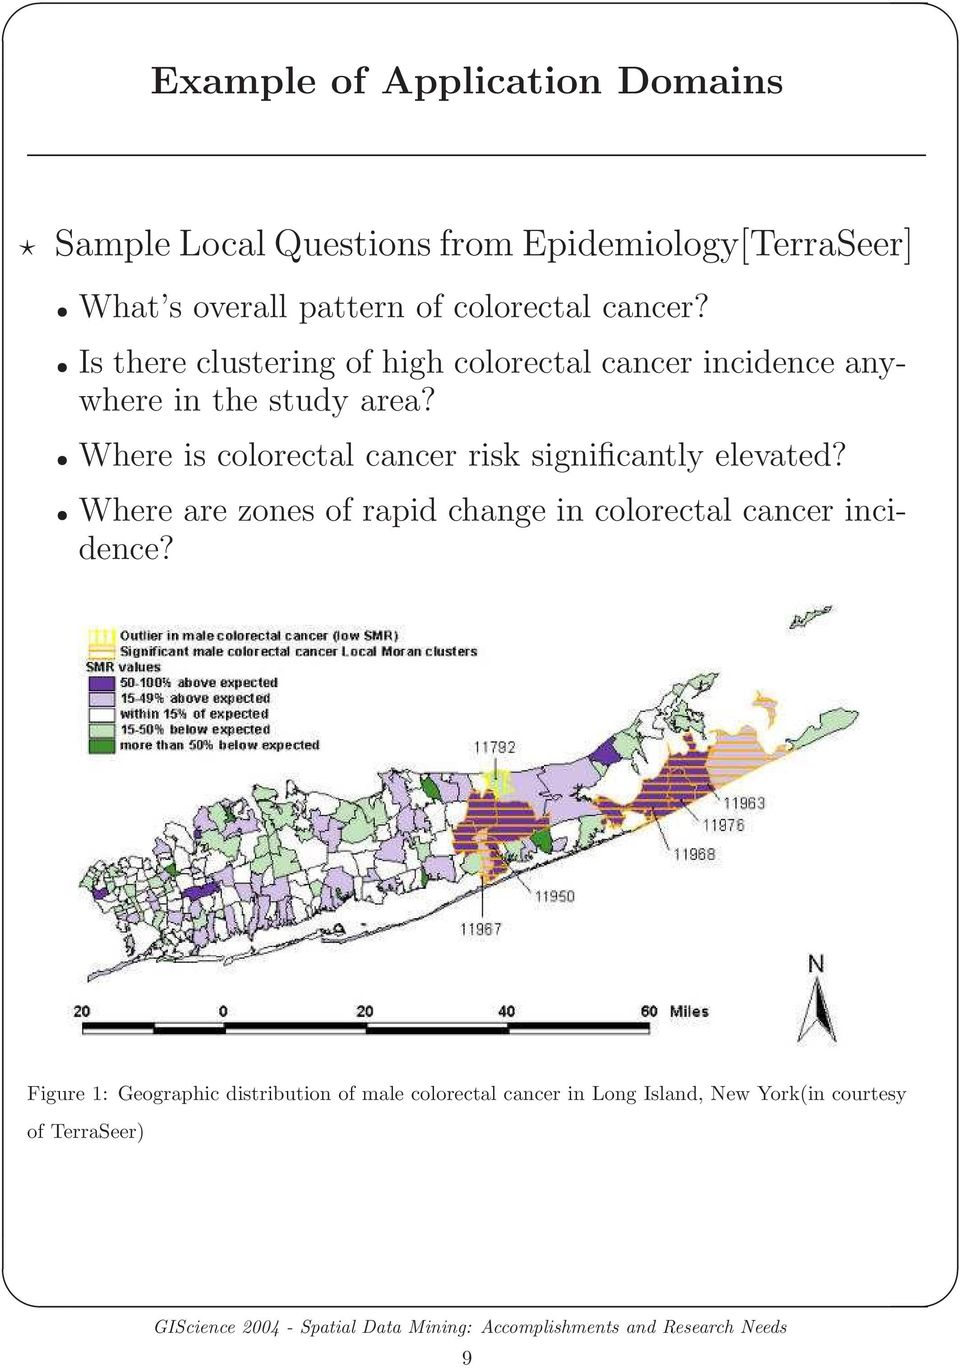 Where is colorectal cancer risk significantly elevated?